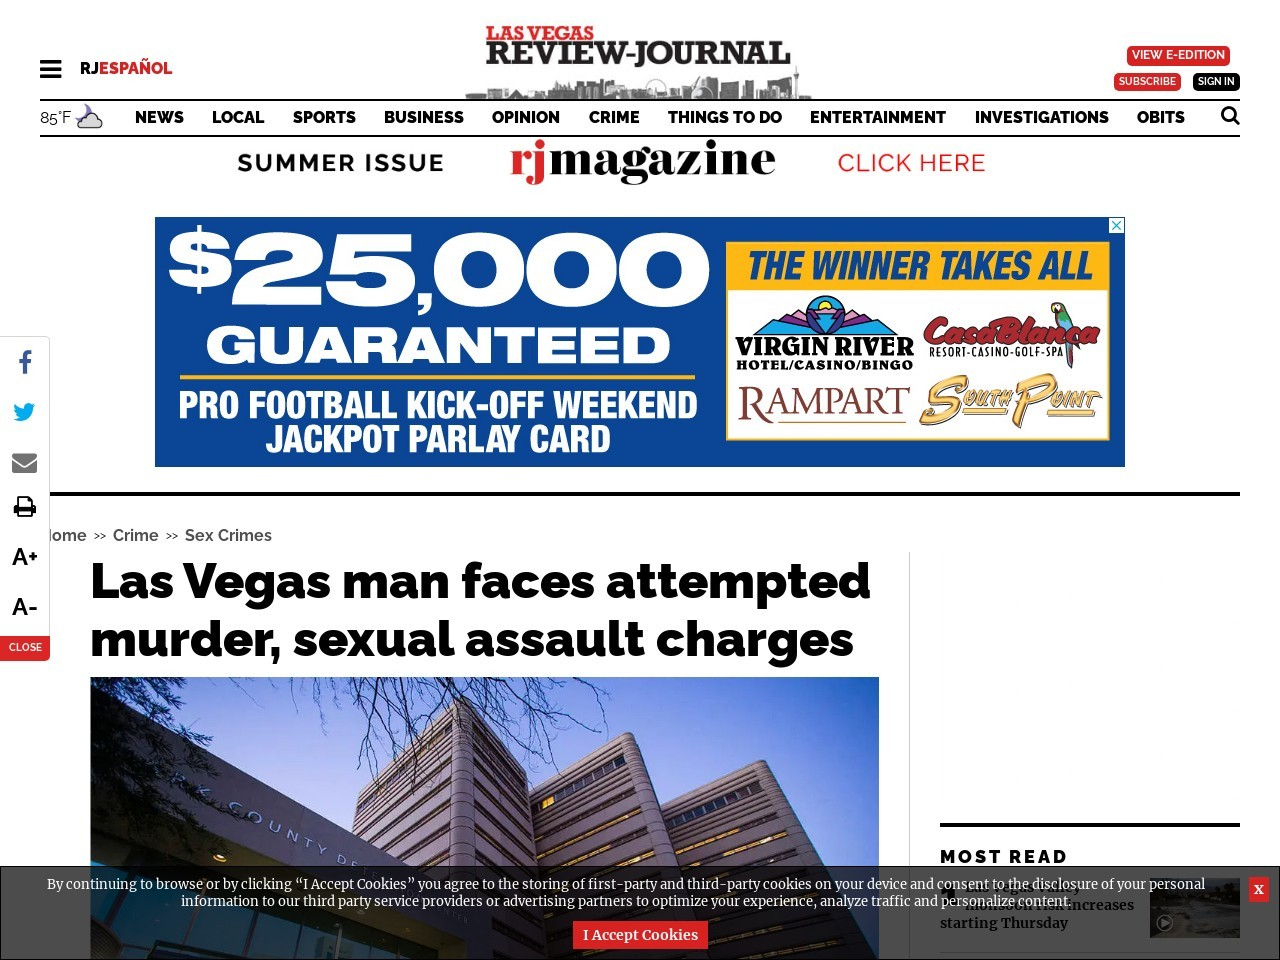 Las Vegas man faces attempted murder, sexual assault charges